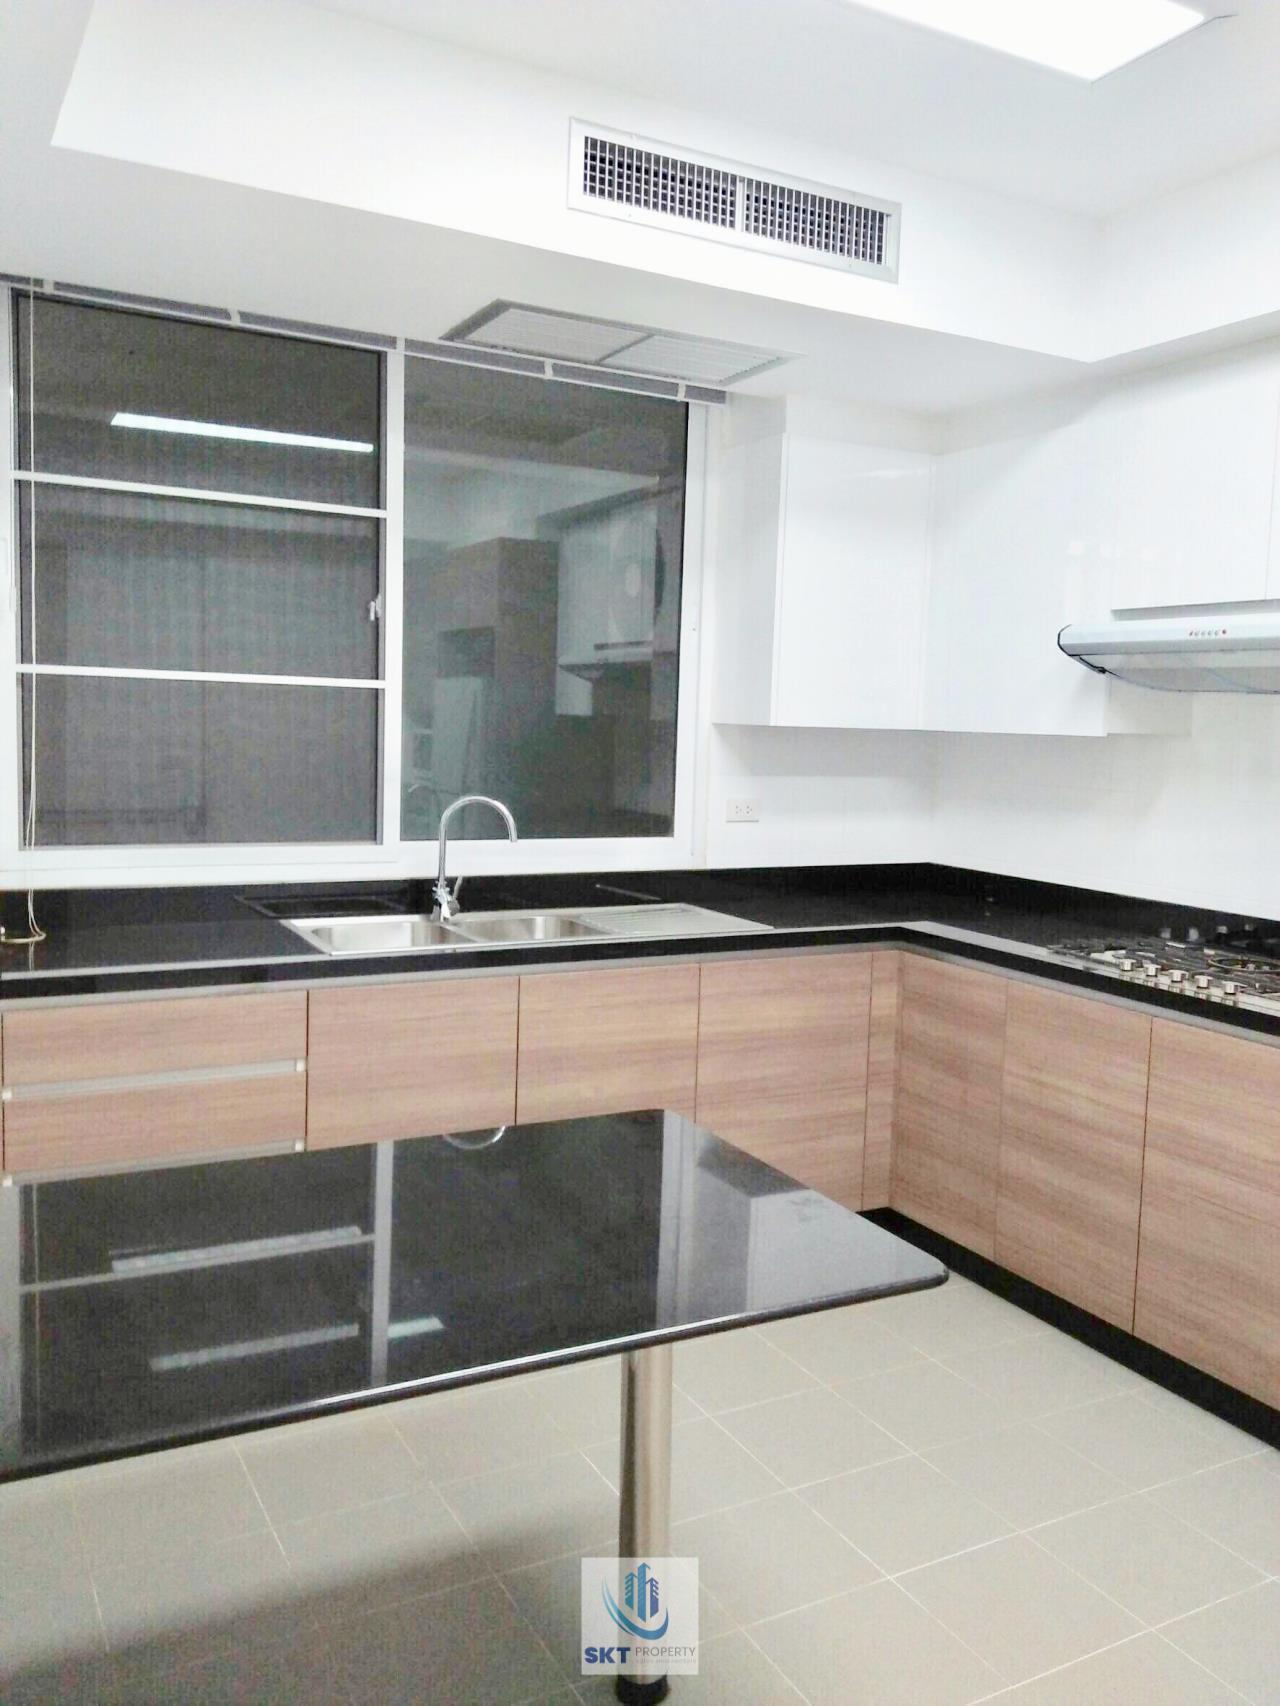 Sukritta Property Agency's For Rent PET FRIENDLY APARTMENT Insaf Tower Near Bts Nana 5